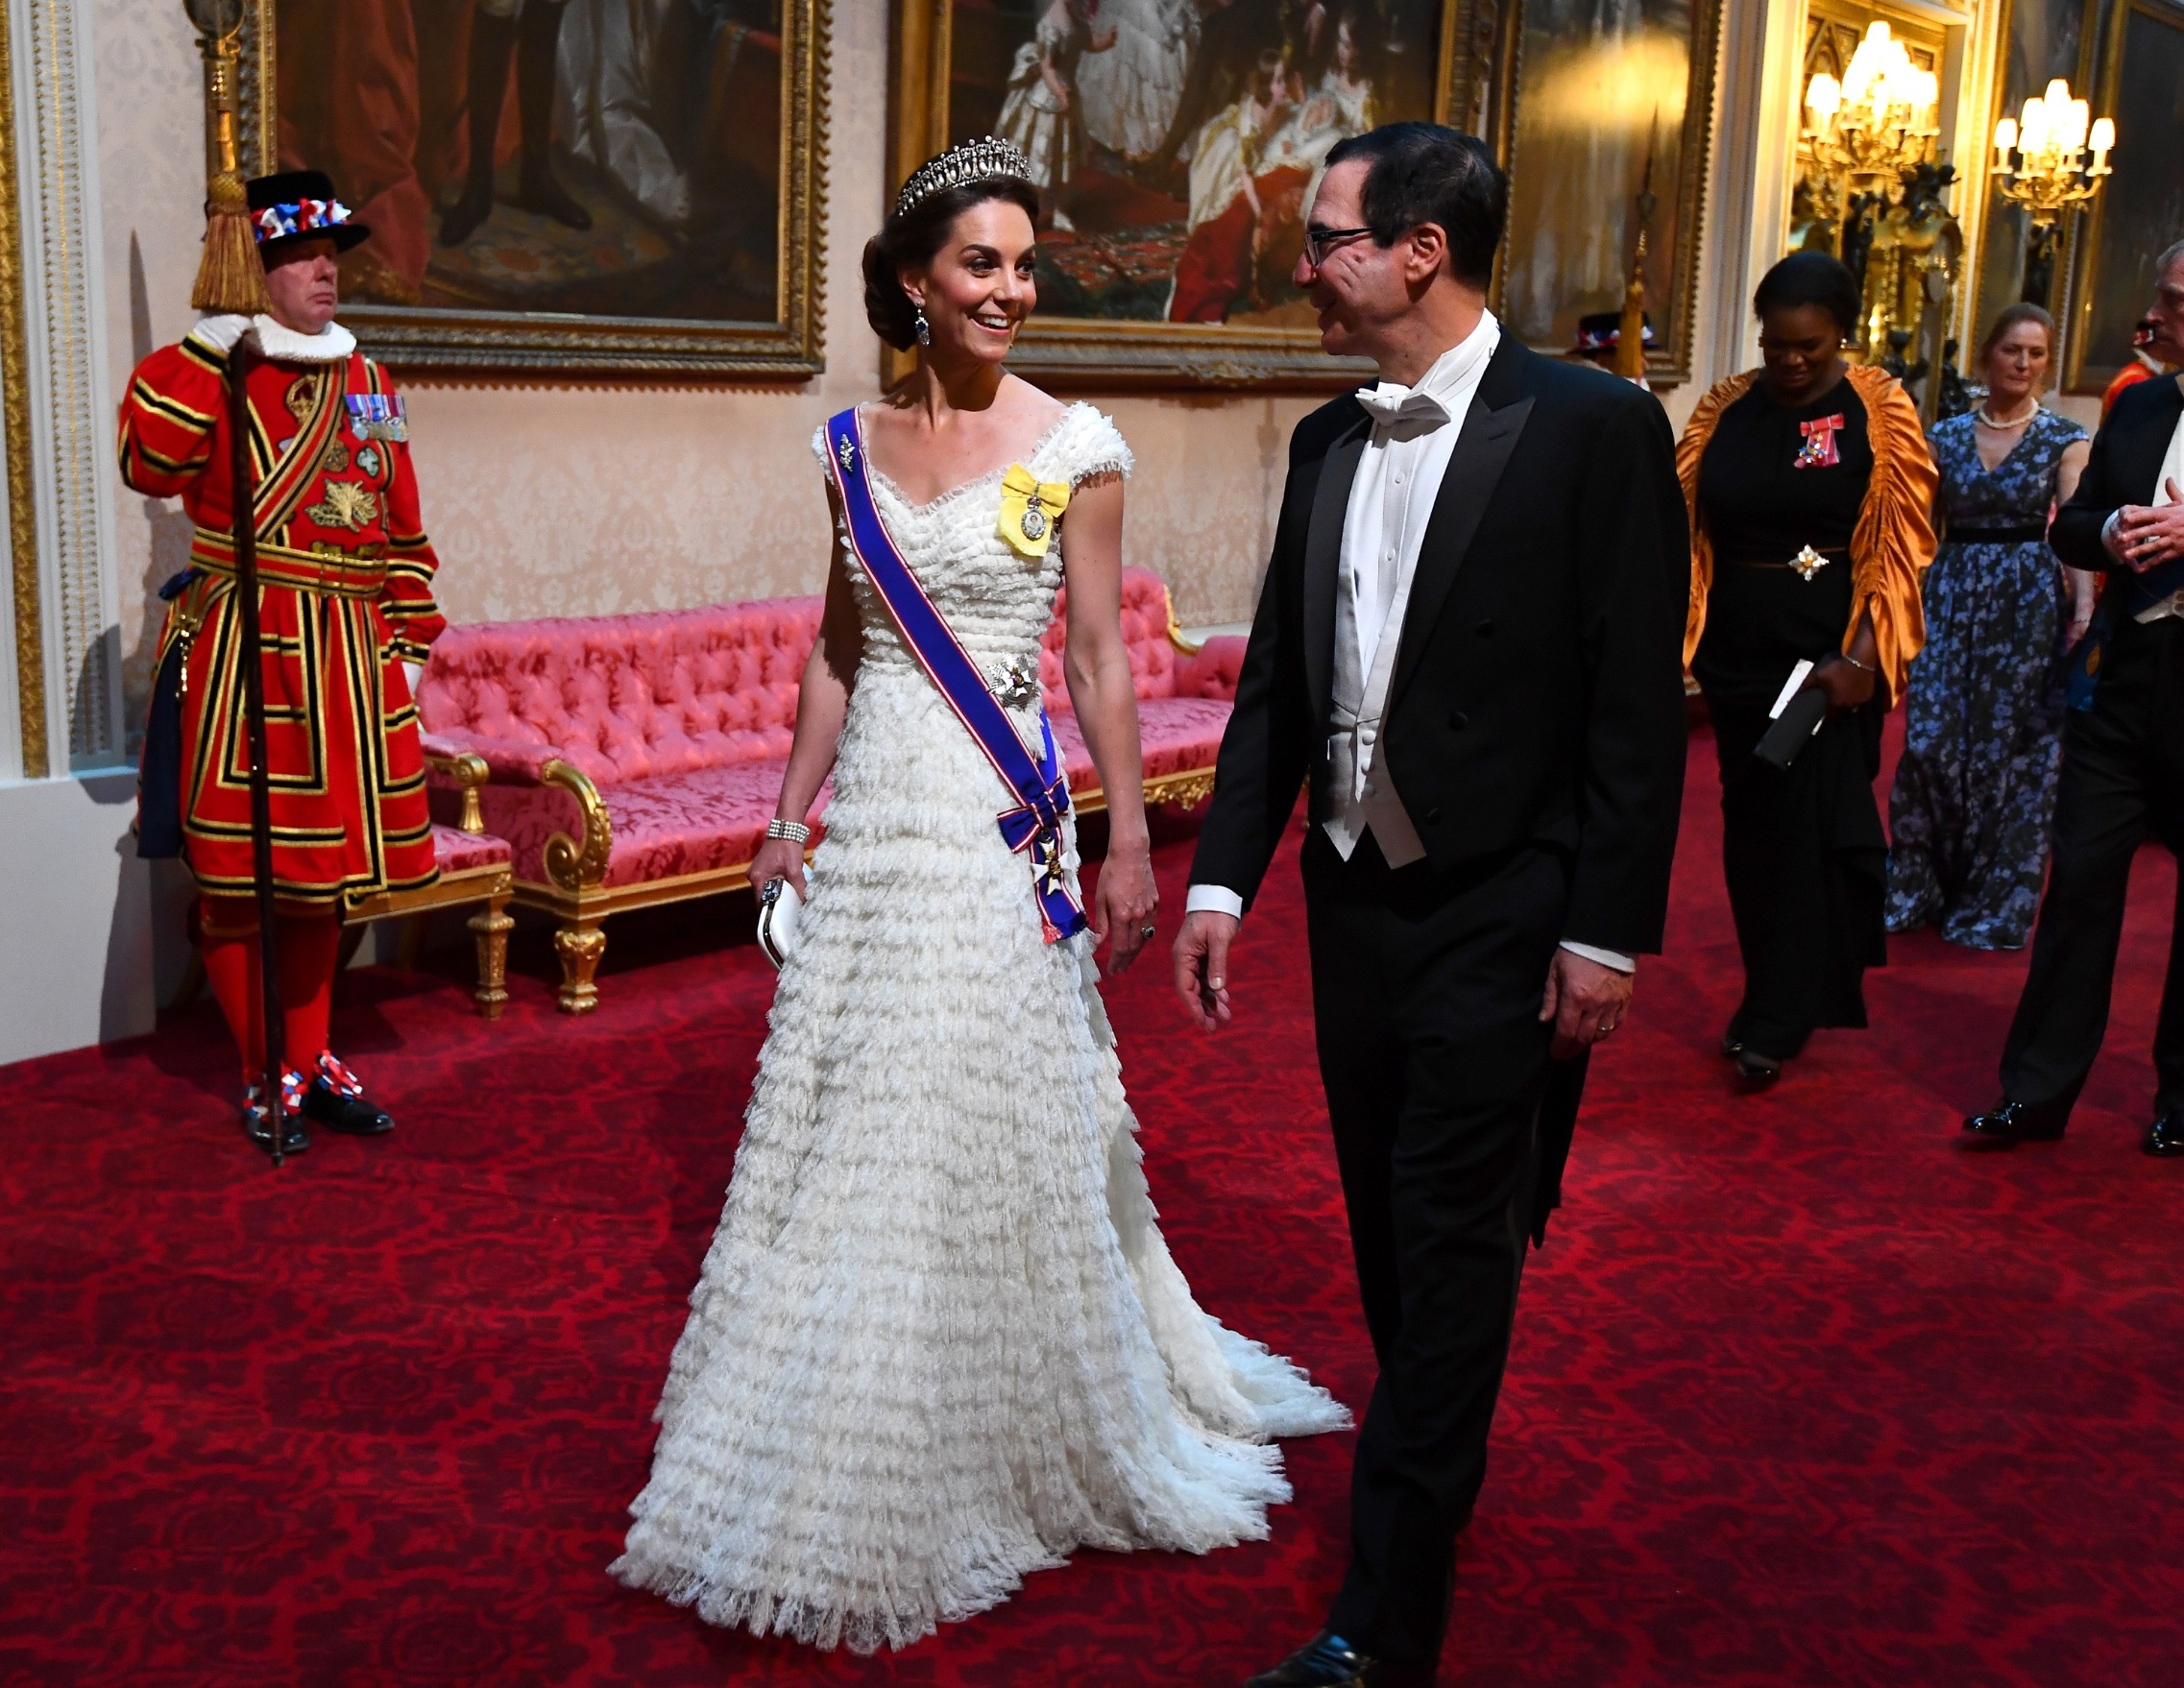 LONDON, ENGLAND - JUNE 03: Catherine,Duchess of Cambridge and United States Secretary of the Treasury, Steven Mnuchin arrive through the East Gallery for a State Banquet at Buckingham Palace on June 3, 2019 in London, England. President Trump's three-day state visit will include lunch with the Queen, and a State Banquet at Buckingham Palace, as well as business meetings with the Prime Minister and the Duke of York, before travelling to Portsmouth to mark the 75th anniversary of the D-Day landings.  (Photo by Victoria Jones- WPA Pool/Getty Images)